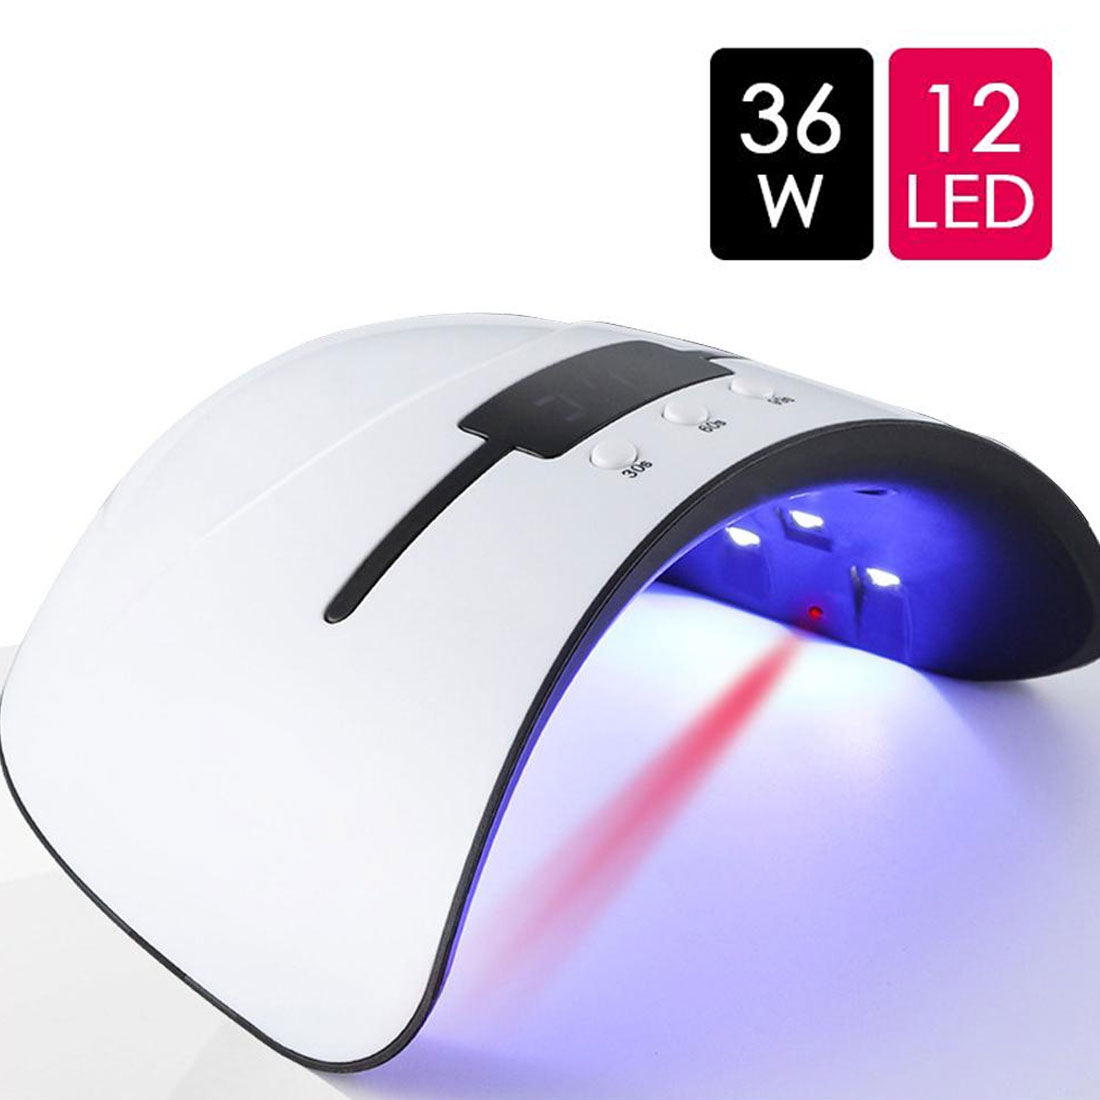 36/6W UV Lamp Nail Dryer For All Types Gel 12 Led UV Lamp For Nail Machine <font><b>USB</b></font> 30s 60s 90s Timer Portable UV Lamps Hardening image